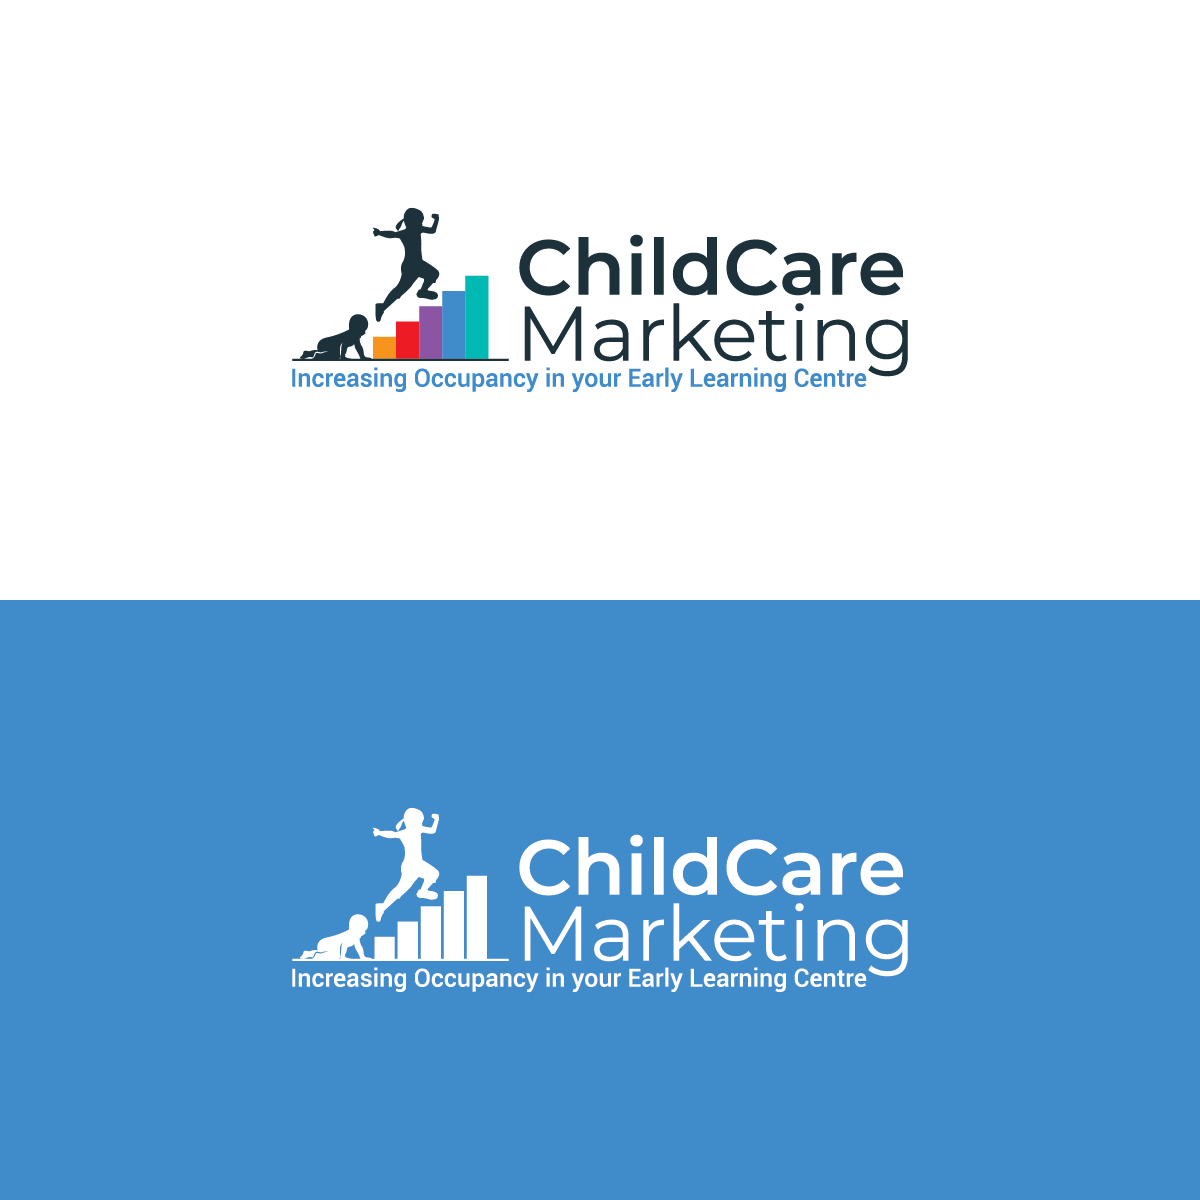 Child Care Marketing - Business to Business - Logo with Slogan